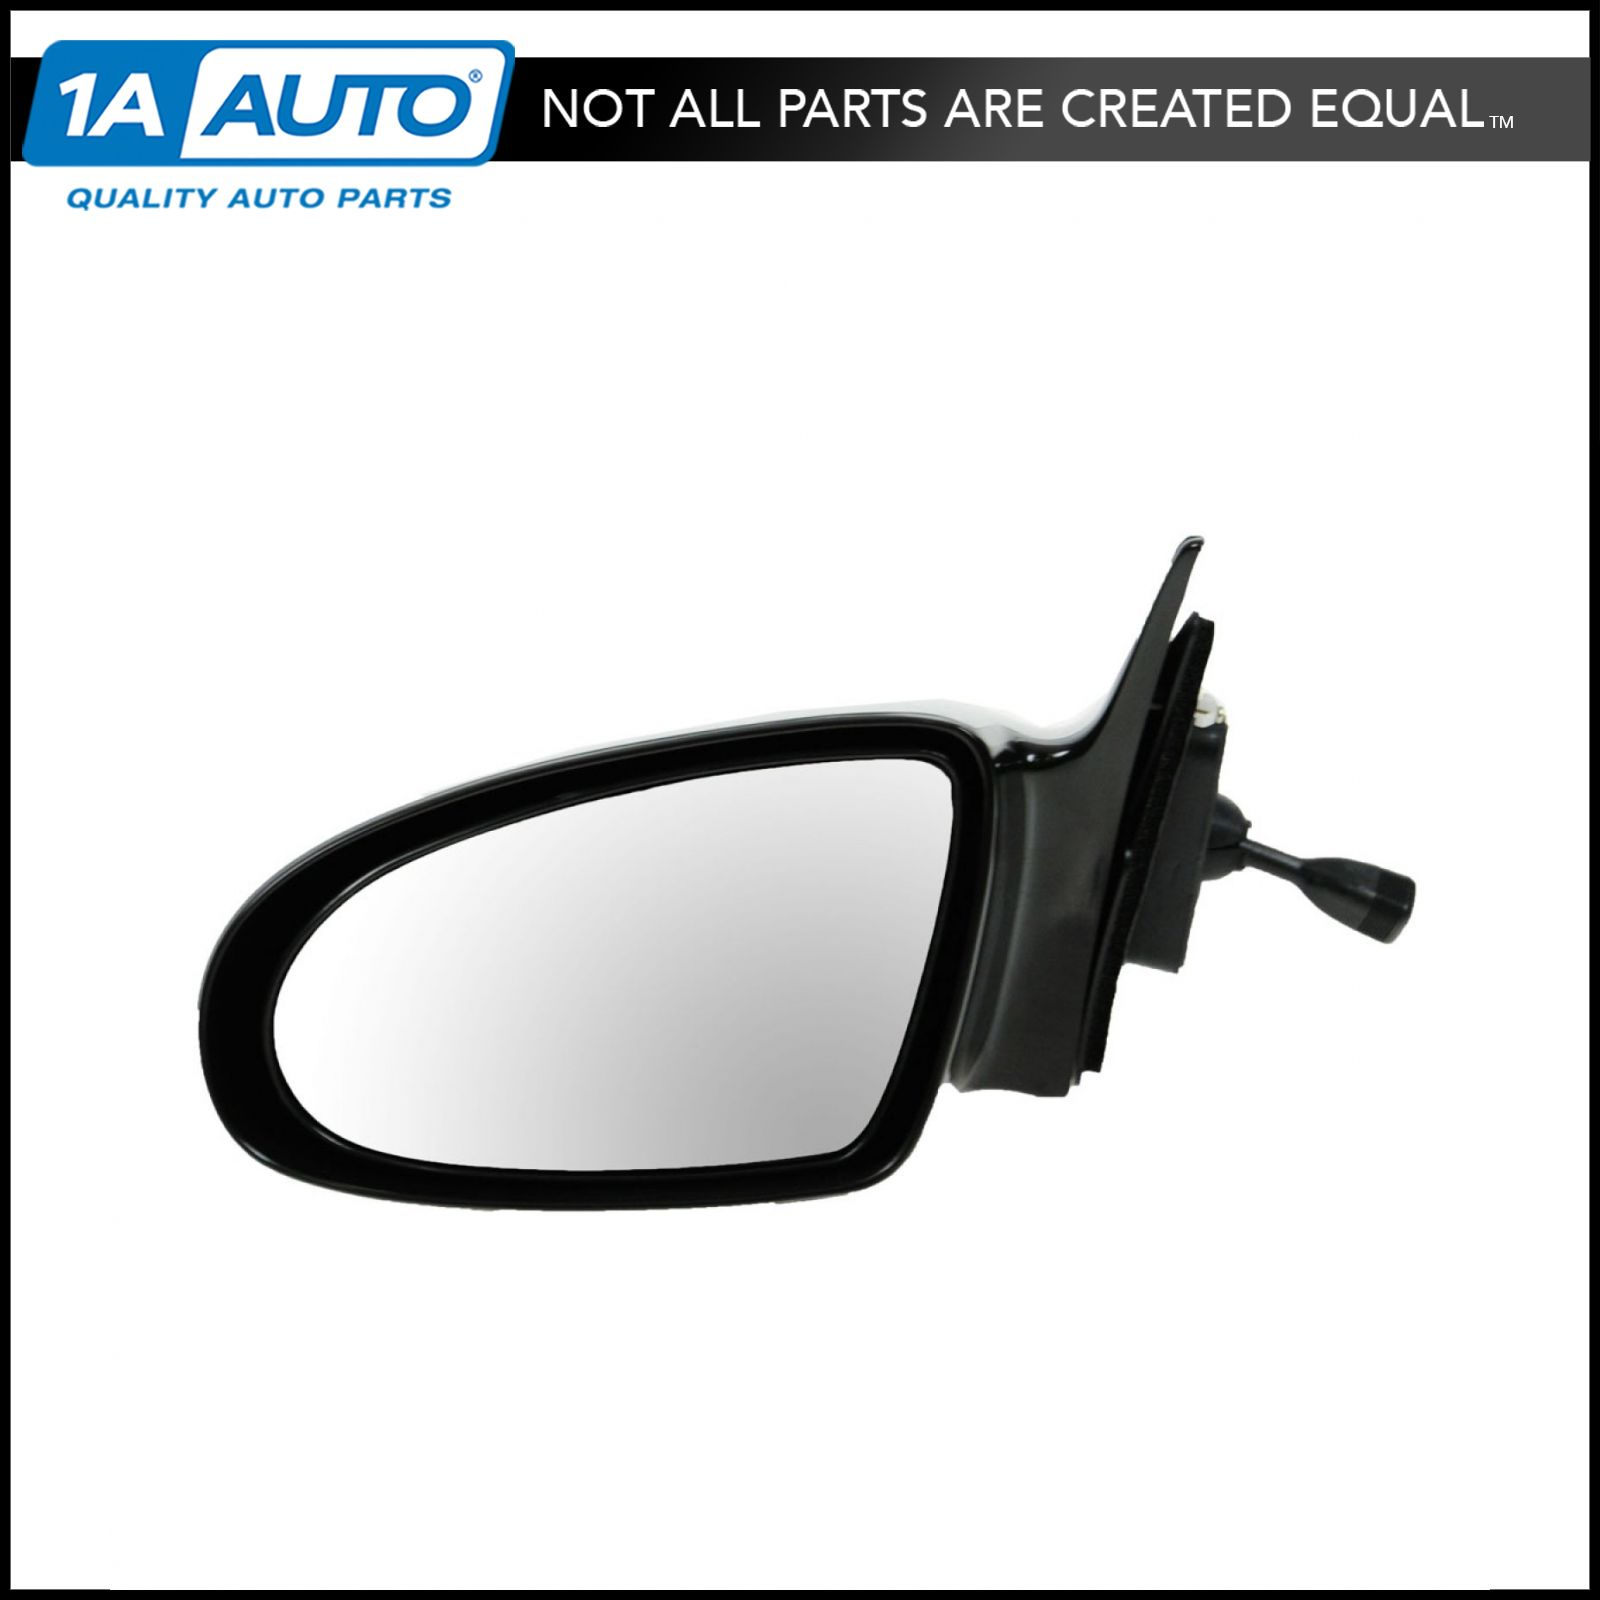 New Perfect Replacement Door Mirror Glass for Passenger Side Ford Ranger 93-94